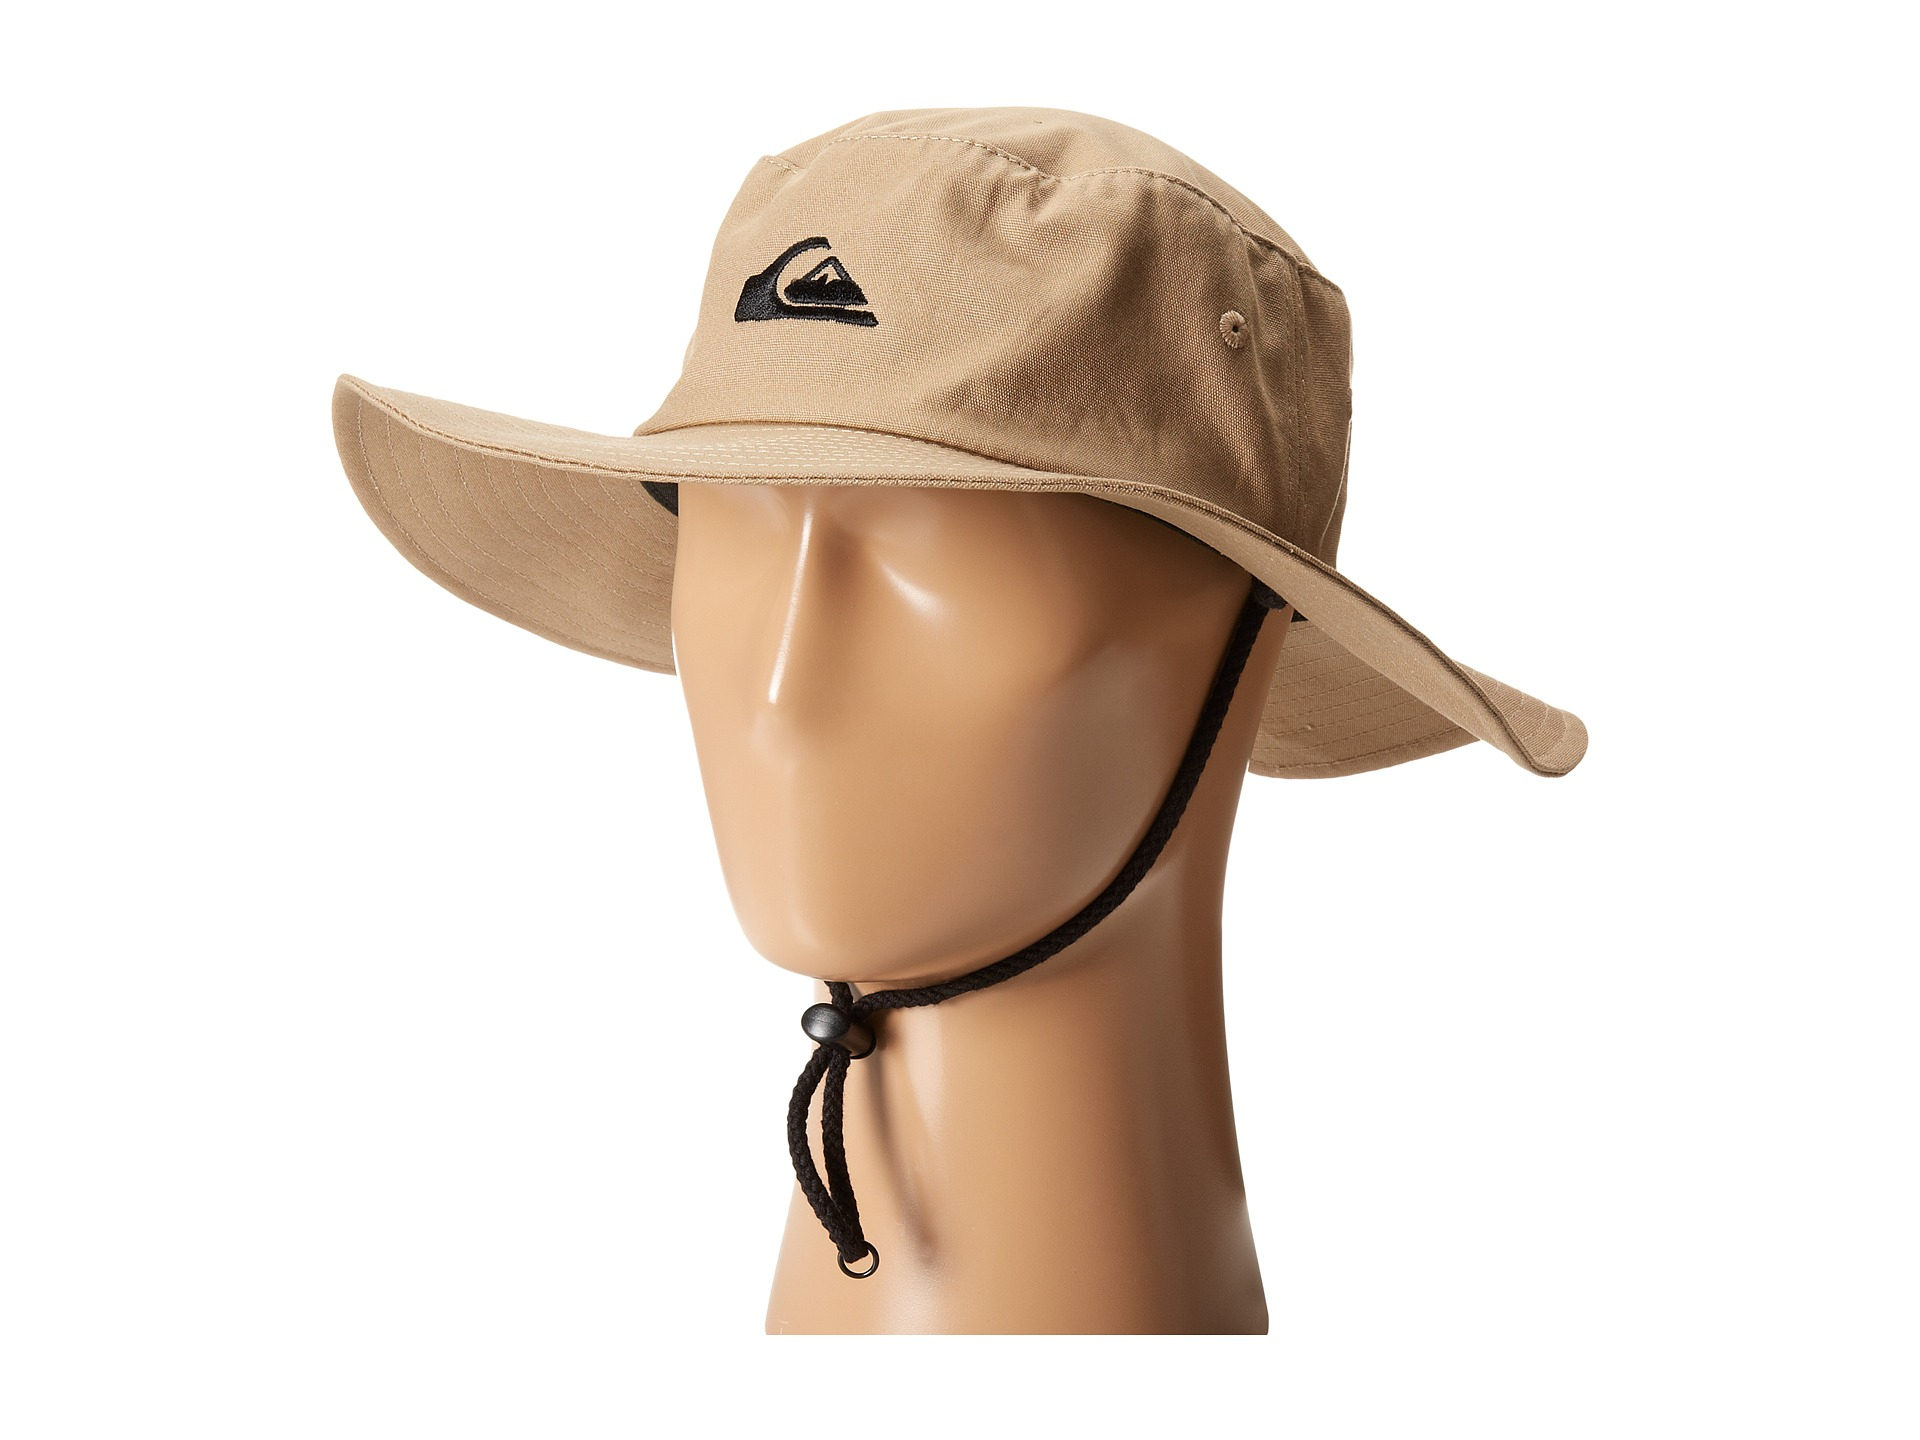 5a7b8aace483bf Quiksilver Original Bushmaster Hat in Natural for Men - Lyst